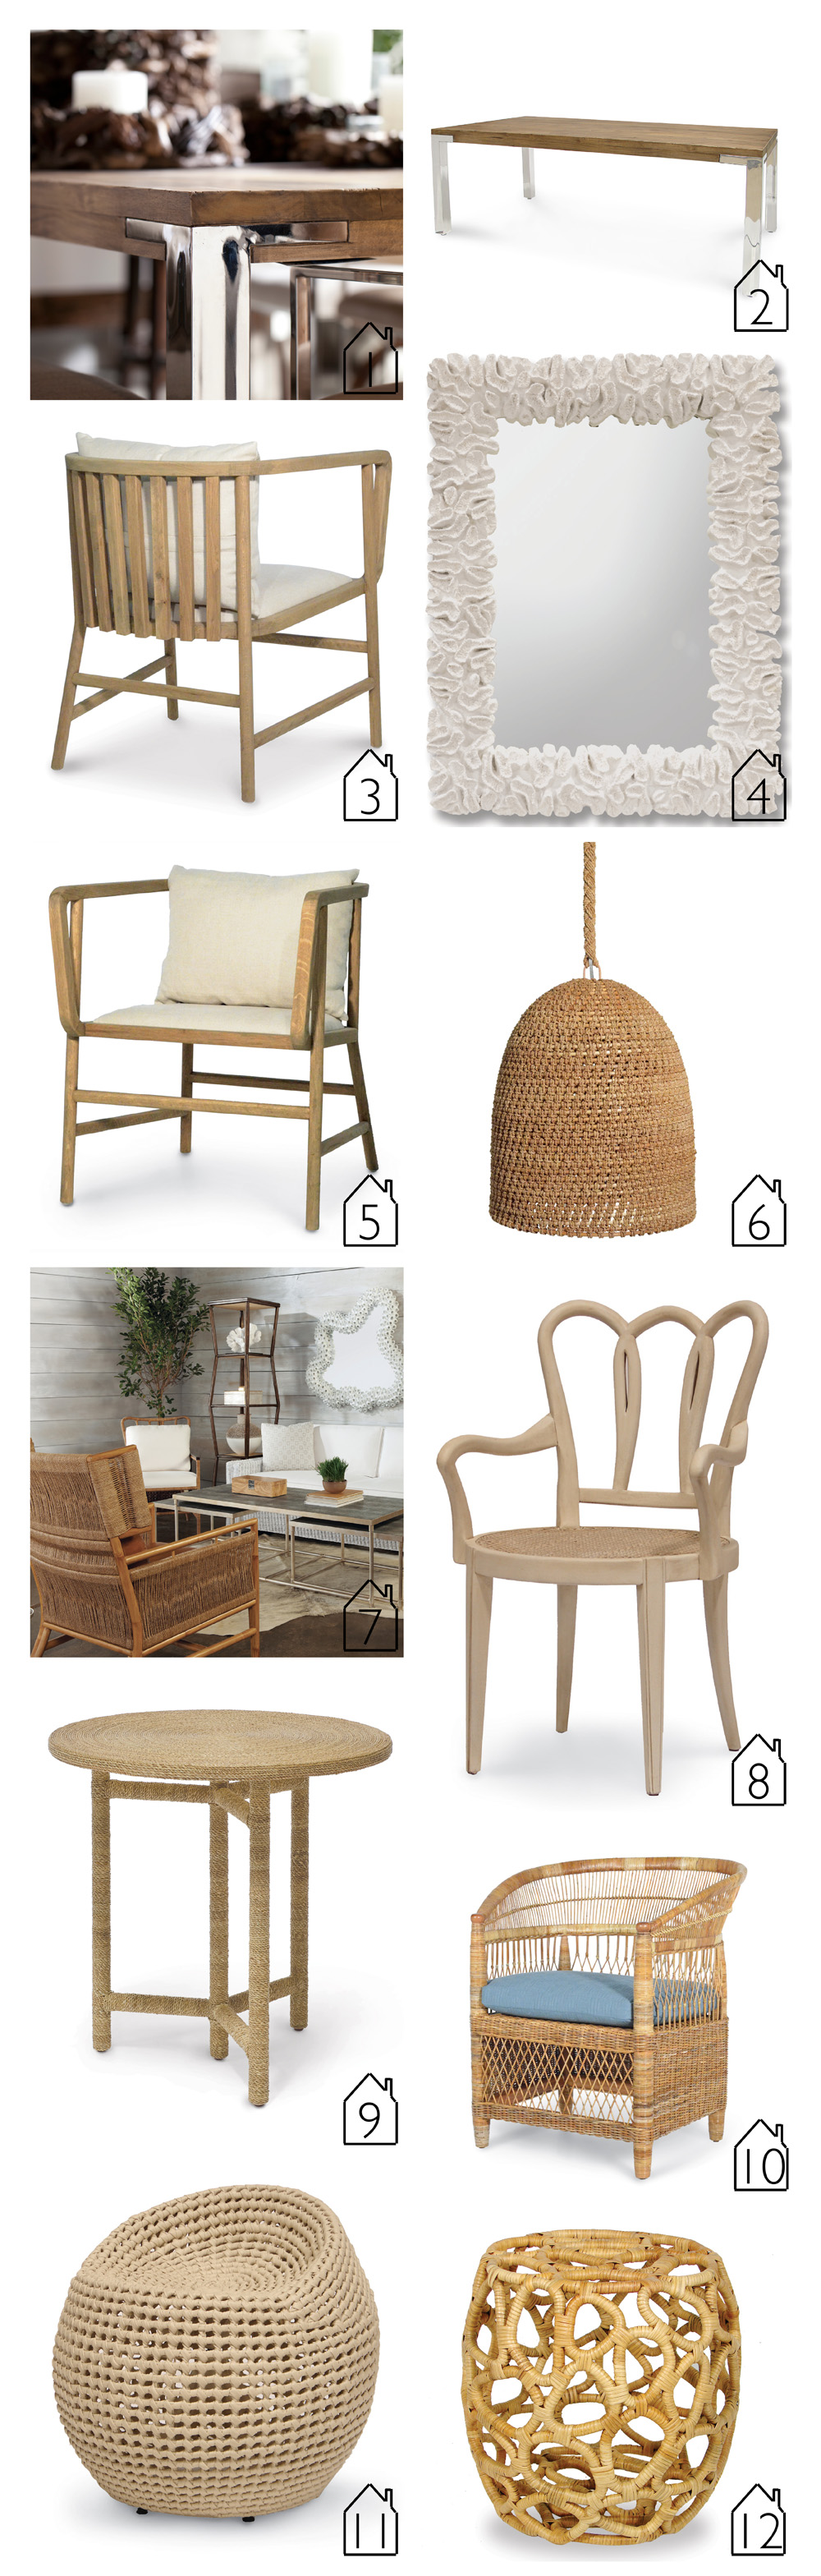 1. Brighton Collection  2. Brighton Collection  3. Dwight Occasional Chair back  4. The Broach Coral Mirror  5. Dwight Occasional Chair front  6. Green Oaks Pendant  7. Owen Chair  8. Leeds Arm Chair  9. Monarch Side Table  10. Malawi Chair  11. Manhattan Ivory Swivel Stool  12. Ella Stool